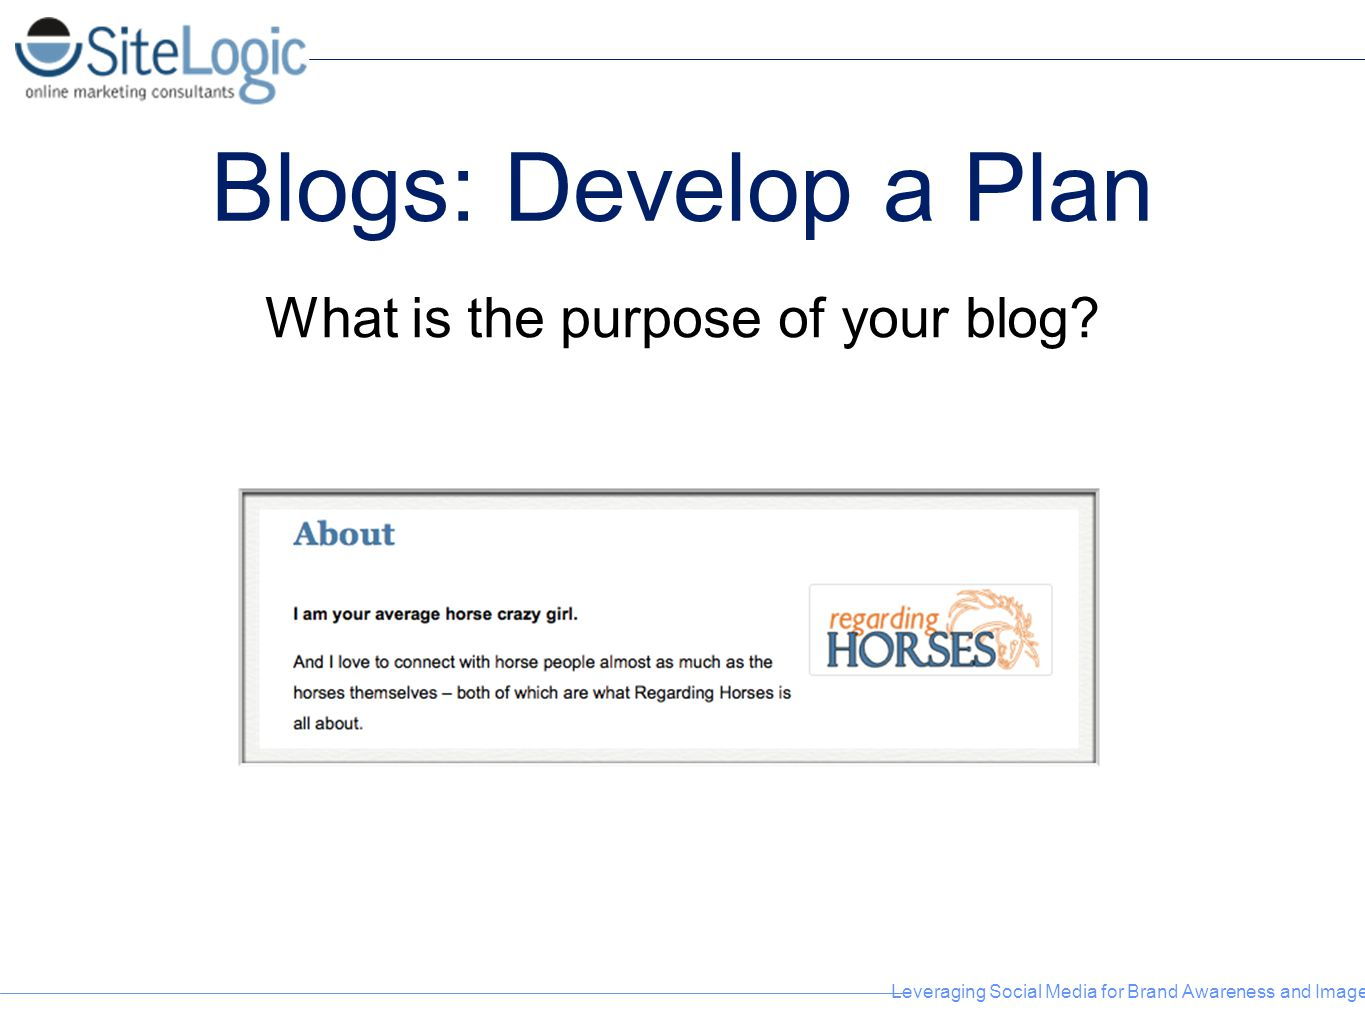 What is the purpose of your blog